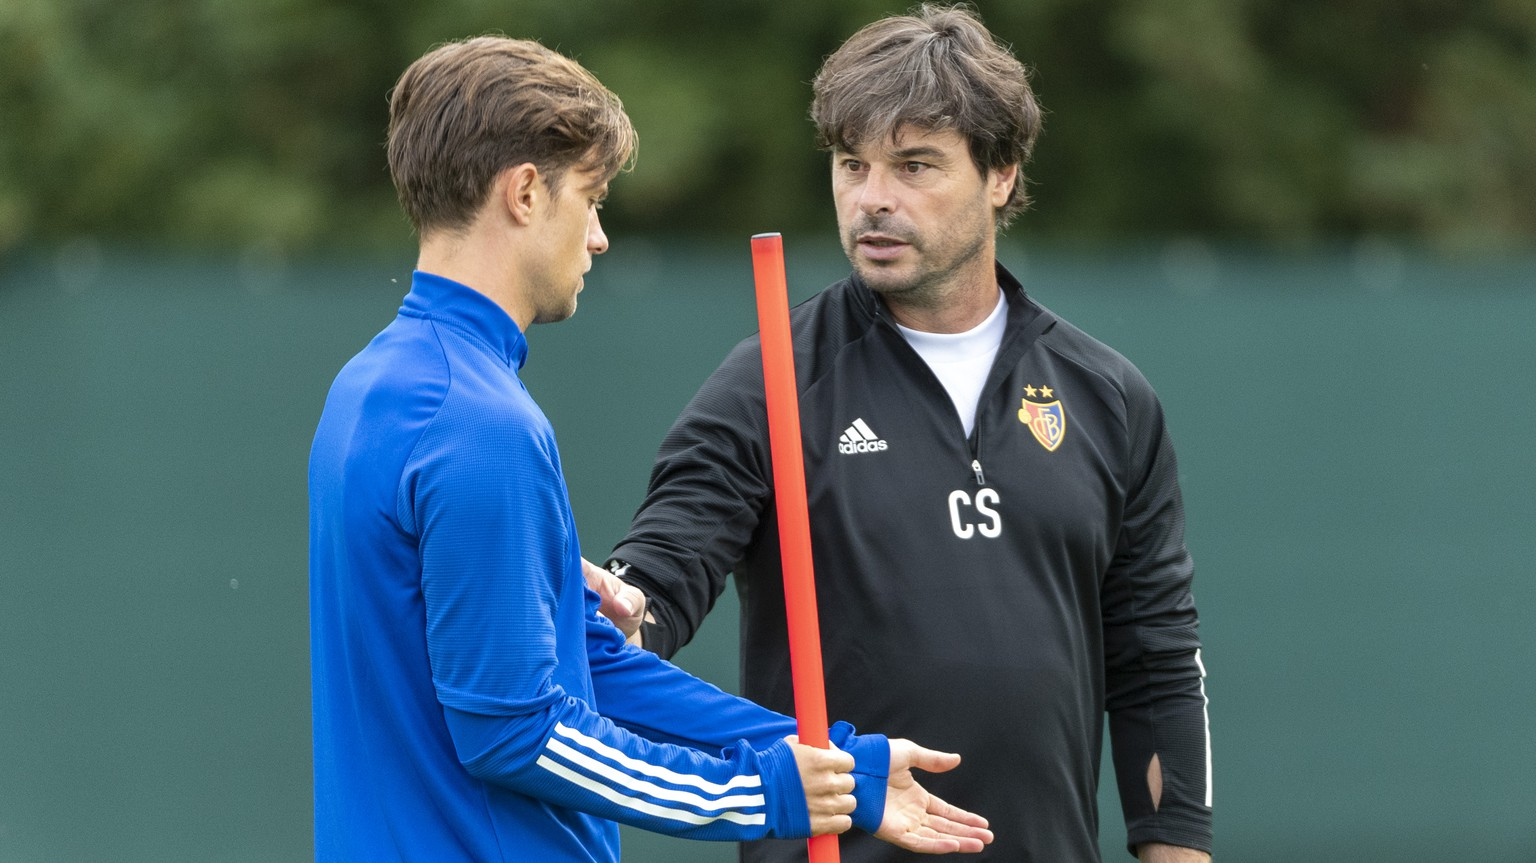 FC Basel's head coach Ciriaco Sforza, right, and captain Valentin Stocker, left, during a training session the day before the UEFA Europa League third qualifying round soccer match between Switzerland's FC Basel 1893 and Cyprus' Anorthosis Famagusta FC in Basel, Switzerland, on Wednesday, September 23, 2020. (KEYSTONE/Georgios Kefalas)